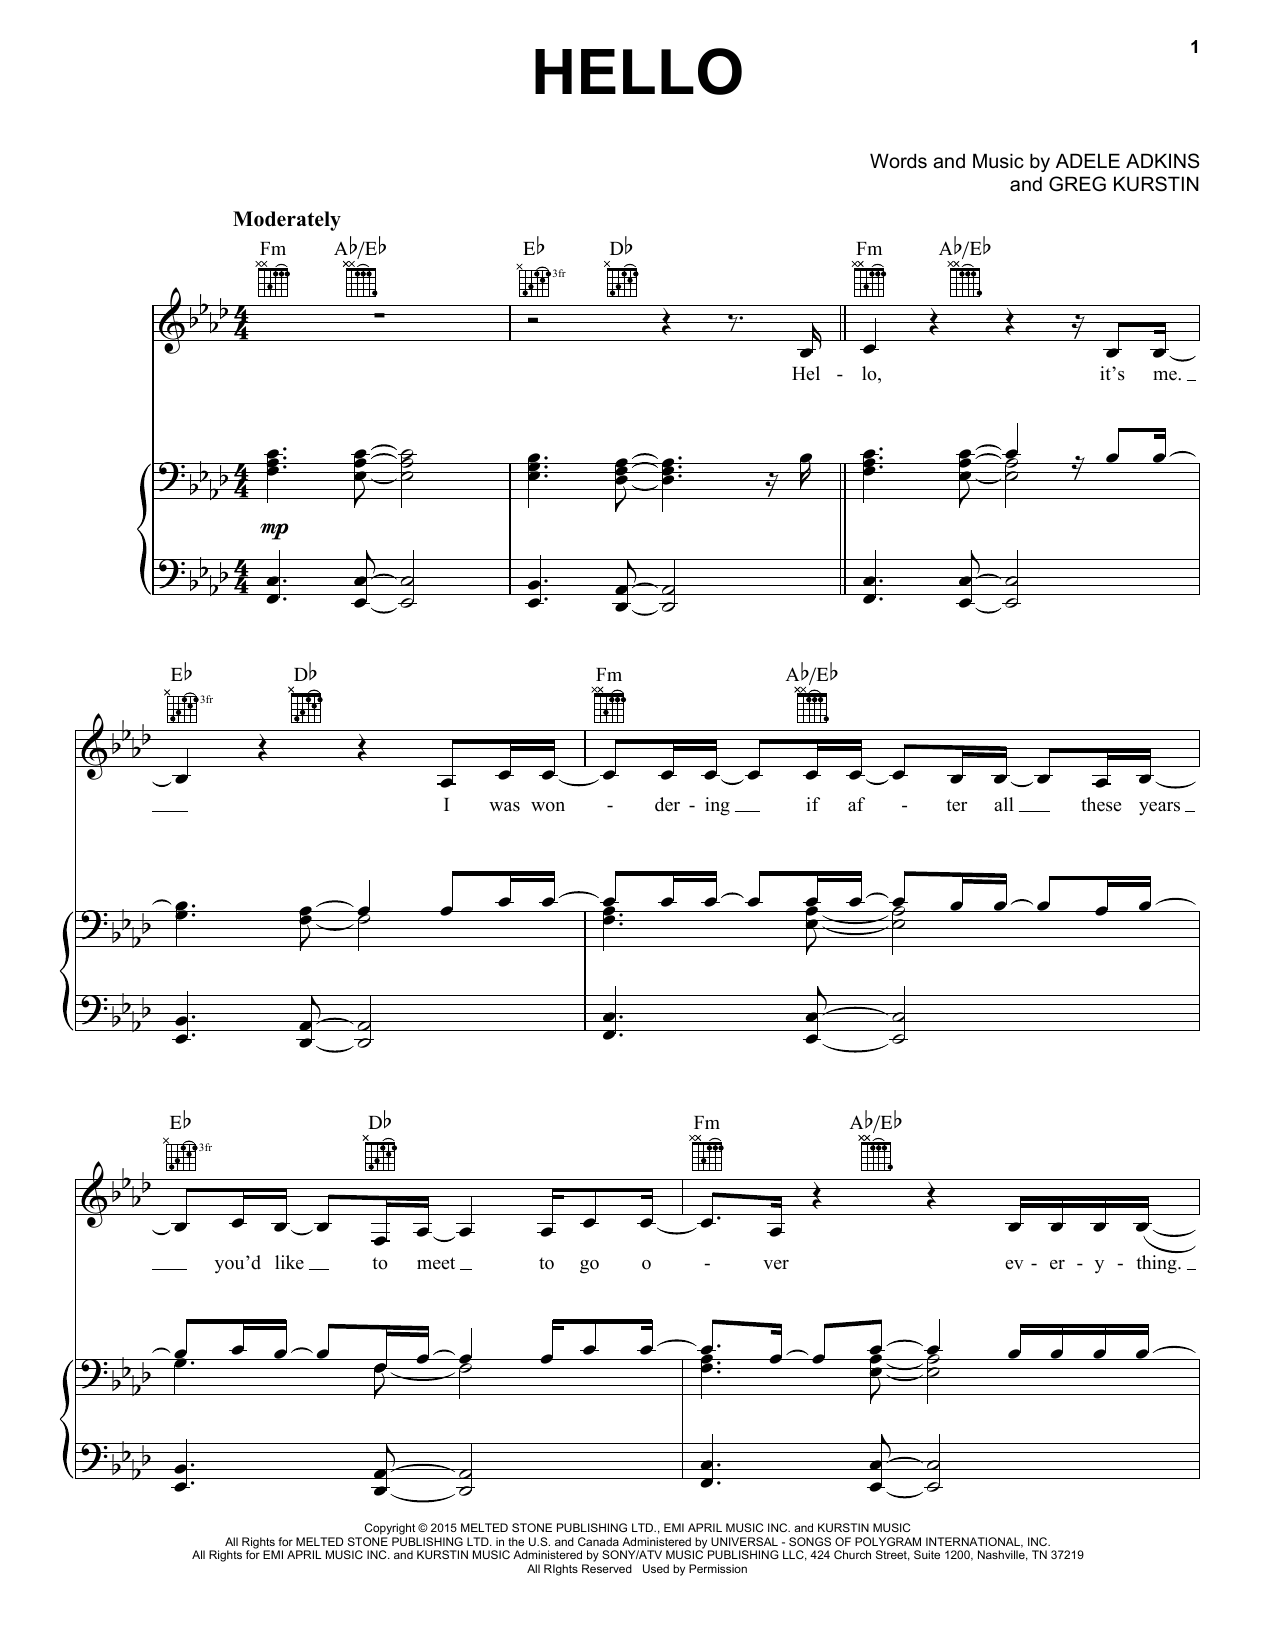 Hello sheet music by Adele (Piano, Vocal u0026 Guitar (Right-Hand Melody) u2013 162058)